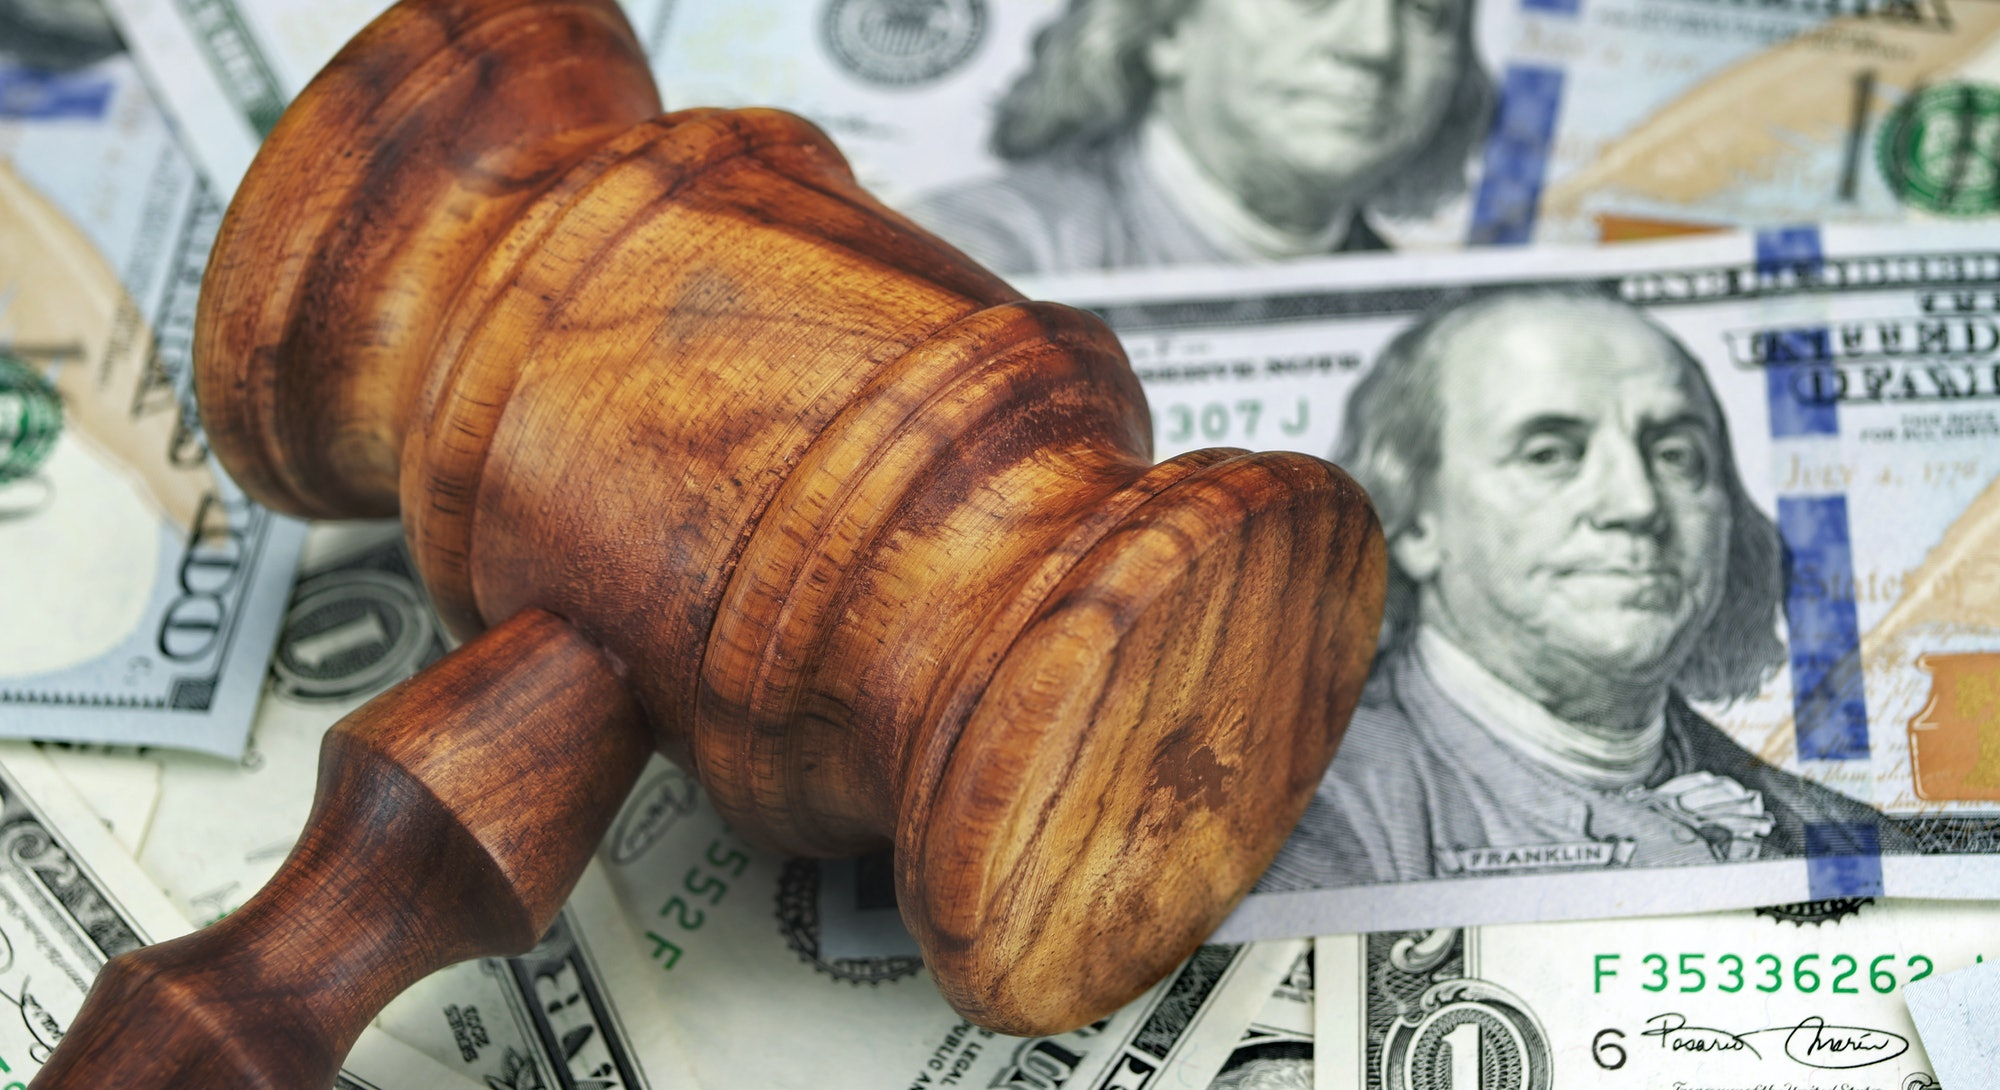 USA Dollar Cash And Auctioneers Or Judges Gavel Or Hammer On Wooden Courtroom Bench Or Auctioneer Ta...